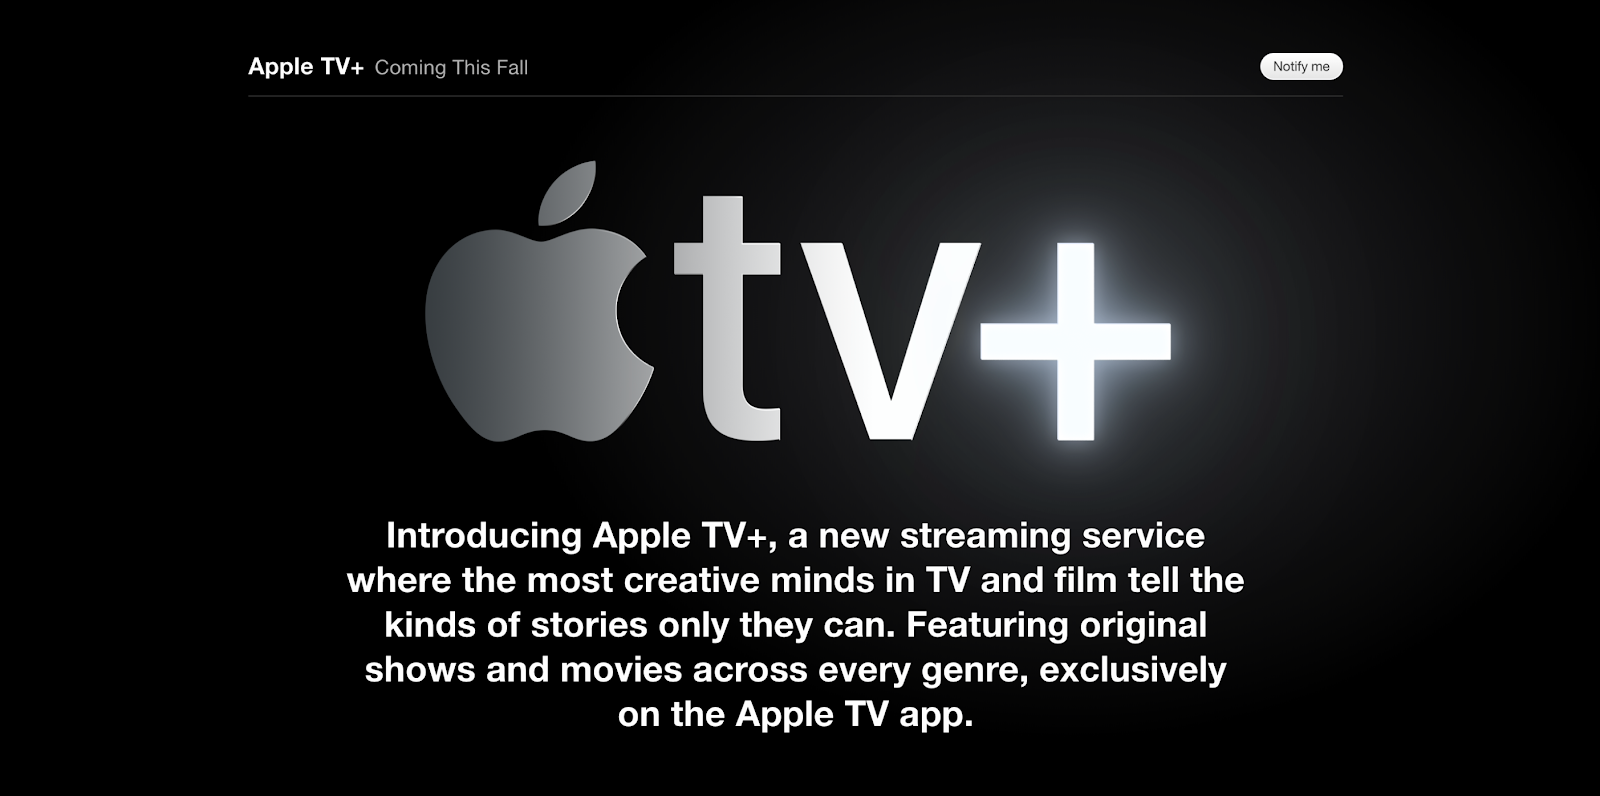 apple tv coming soon page